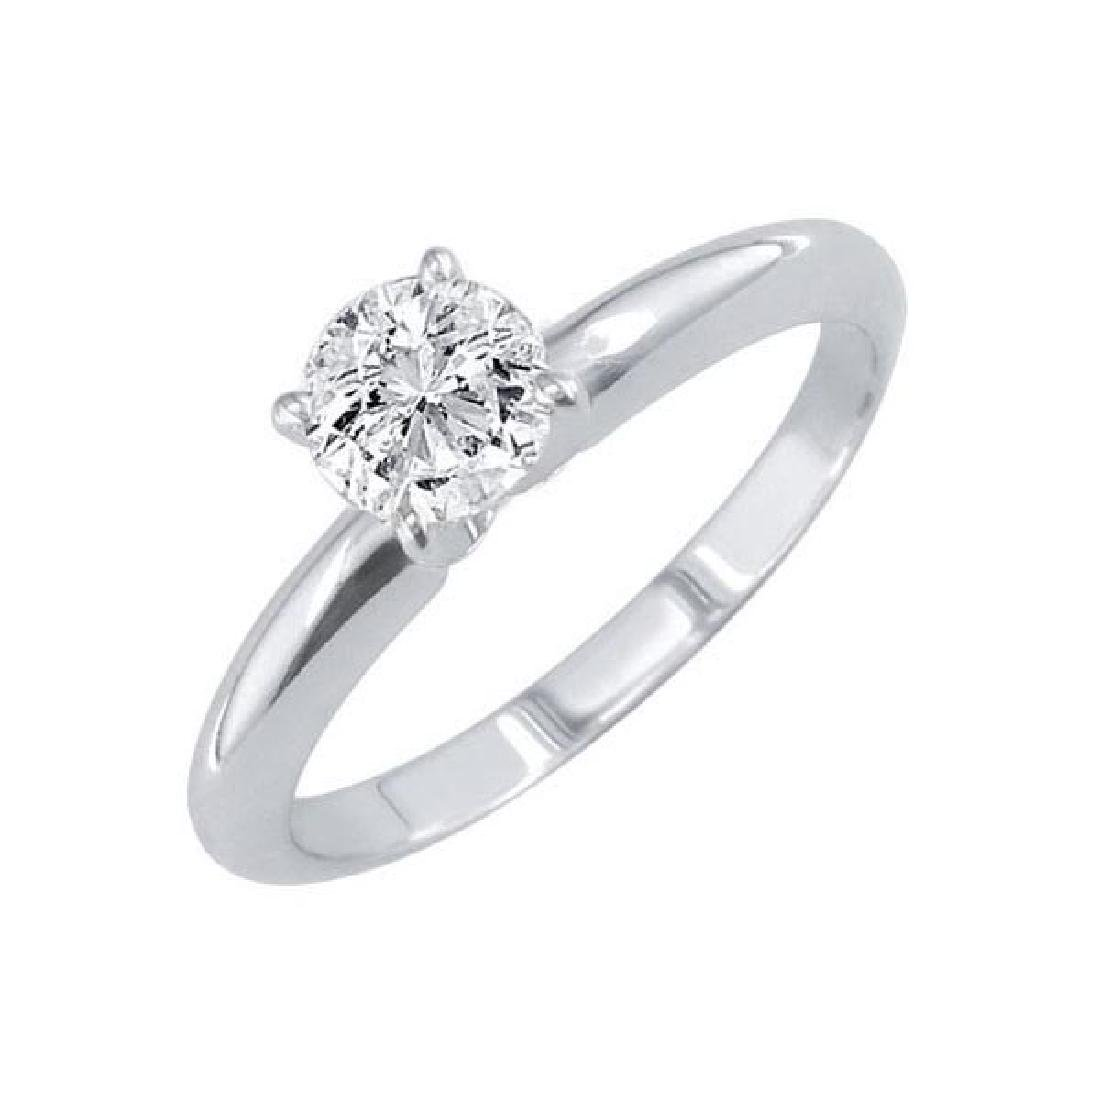 Certified 1.01 CTW Round Diamond Solitaire 14k Ring G/S